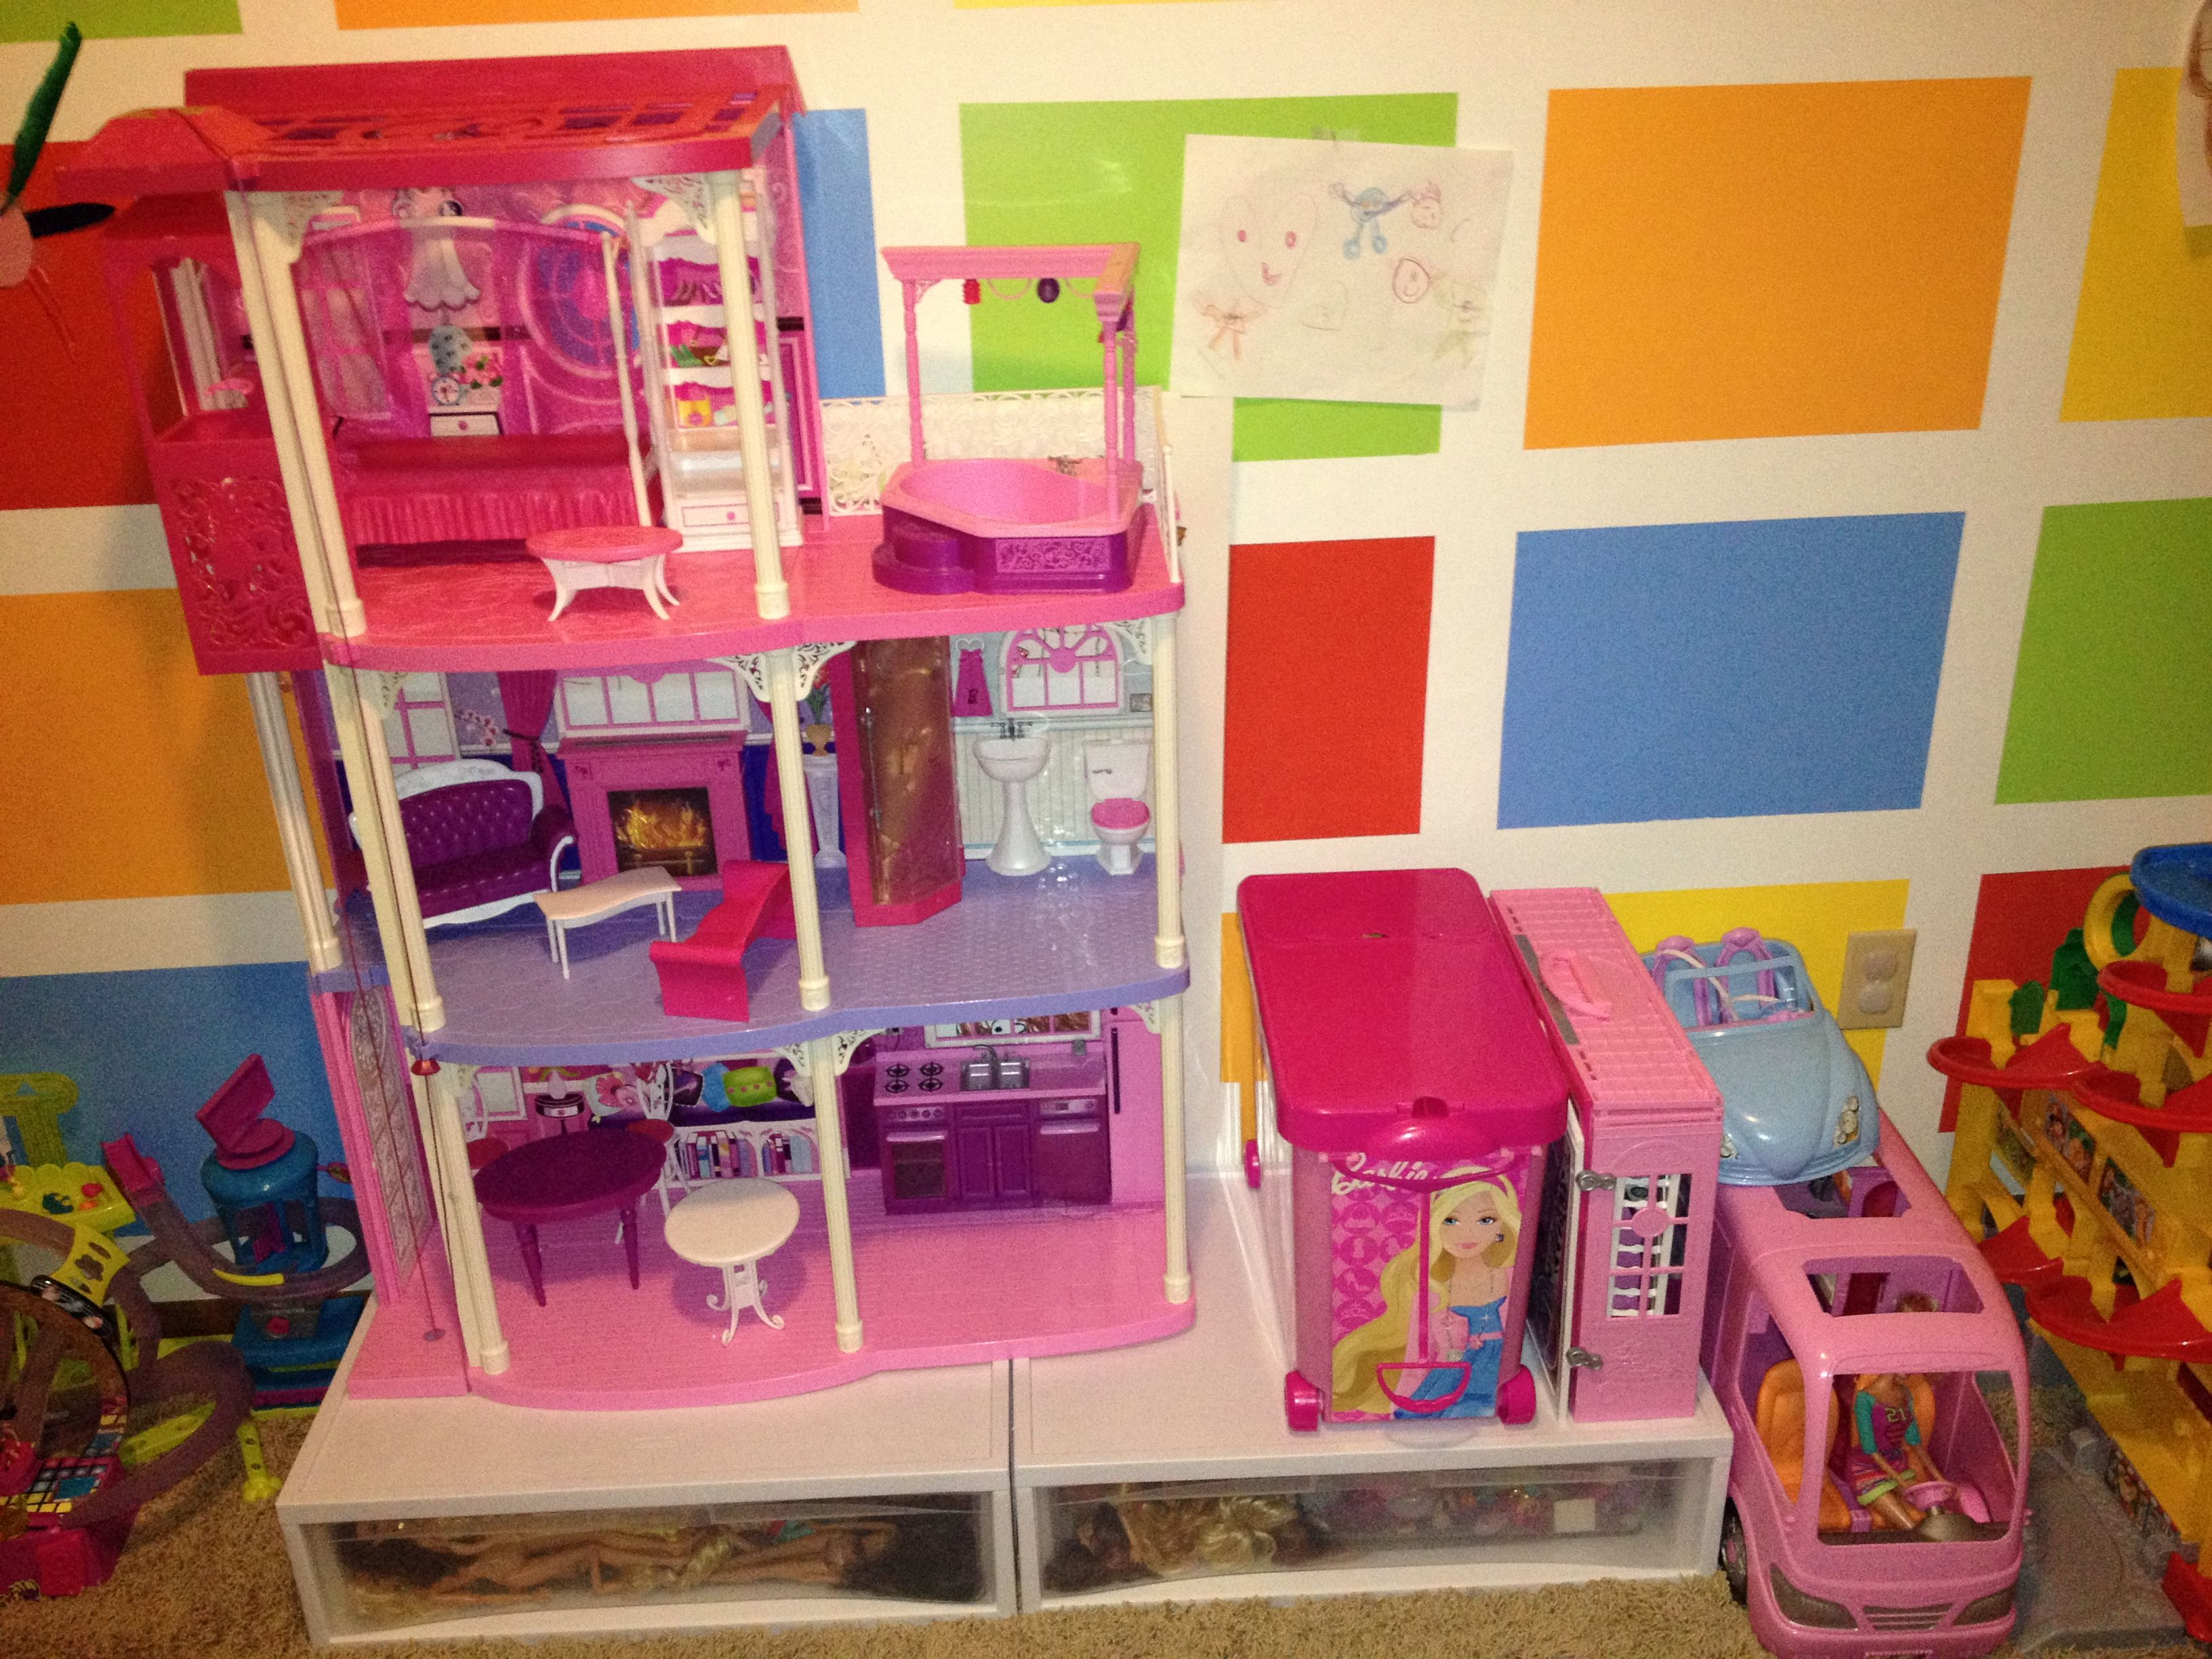 Plastic Storage Drawers Underneath The Barbie Dream House